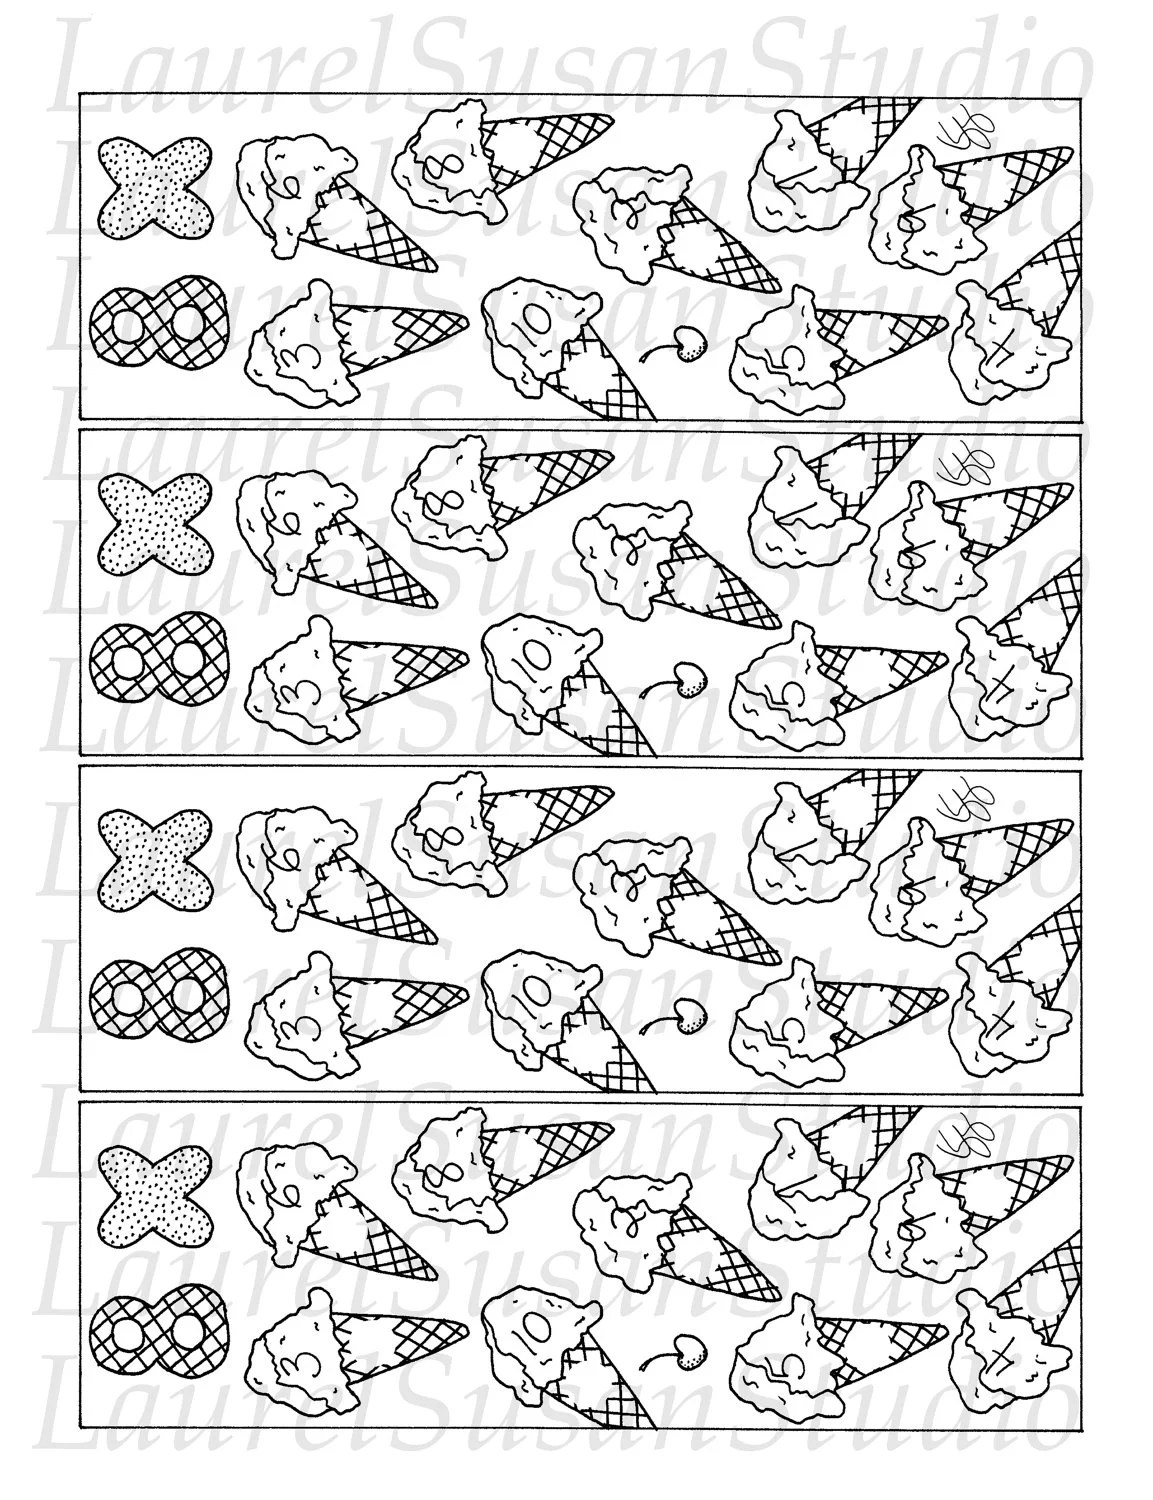 Free coloring pages of multiplication table